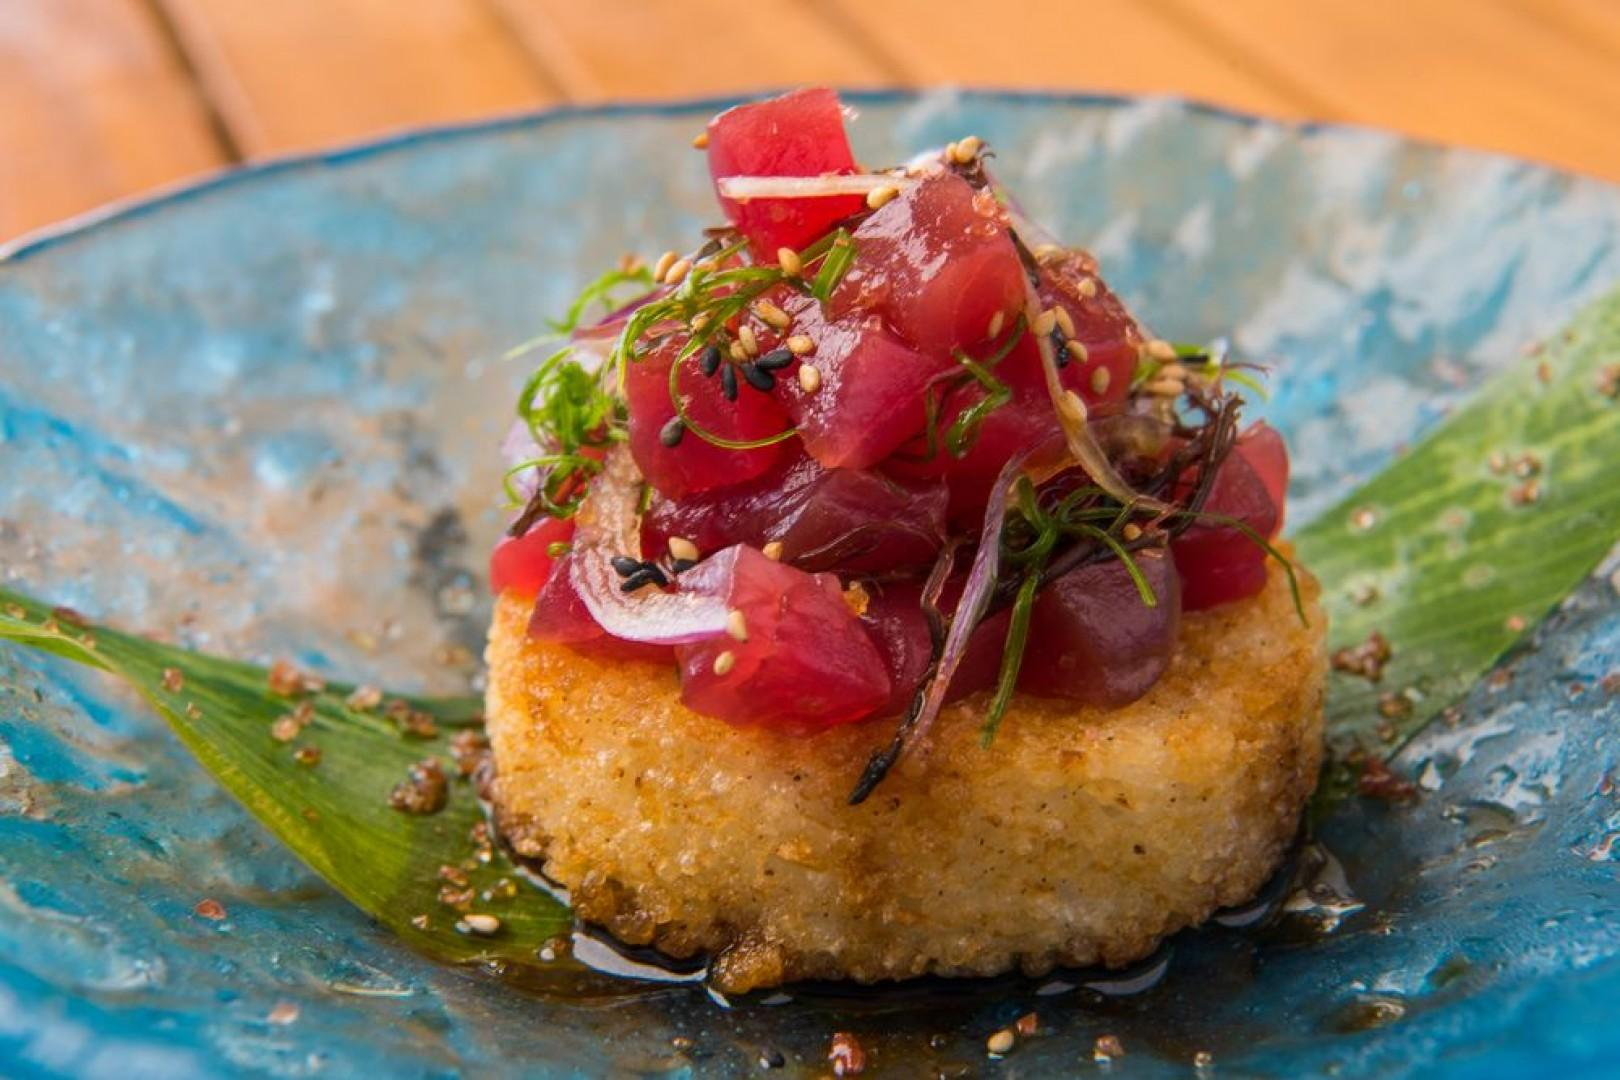 Hualani's Restaurant and Nalu's Grill feature excellent dining options, just steps from your residence.